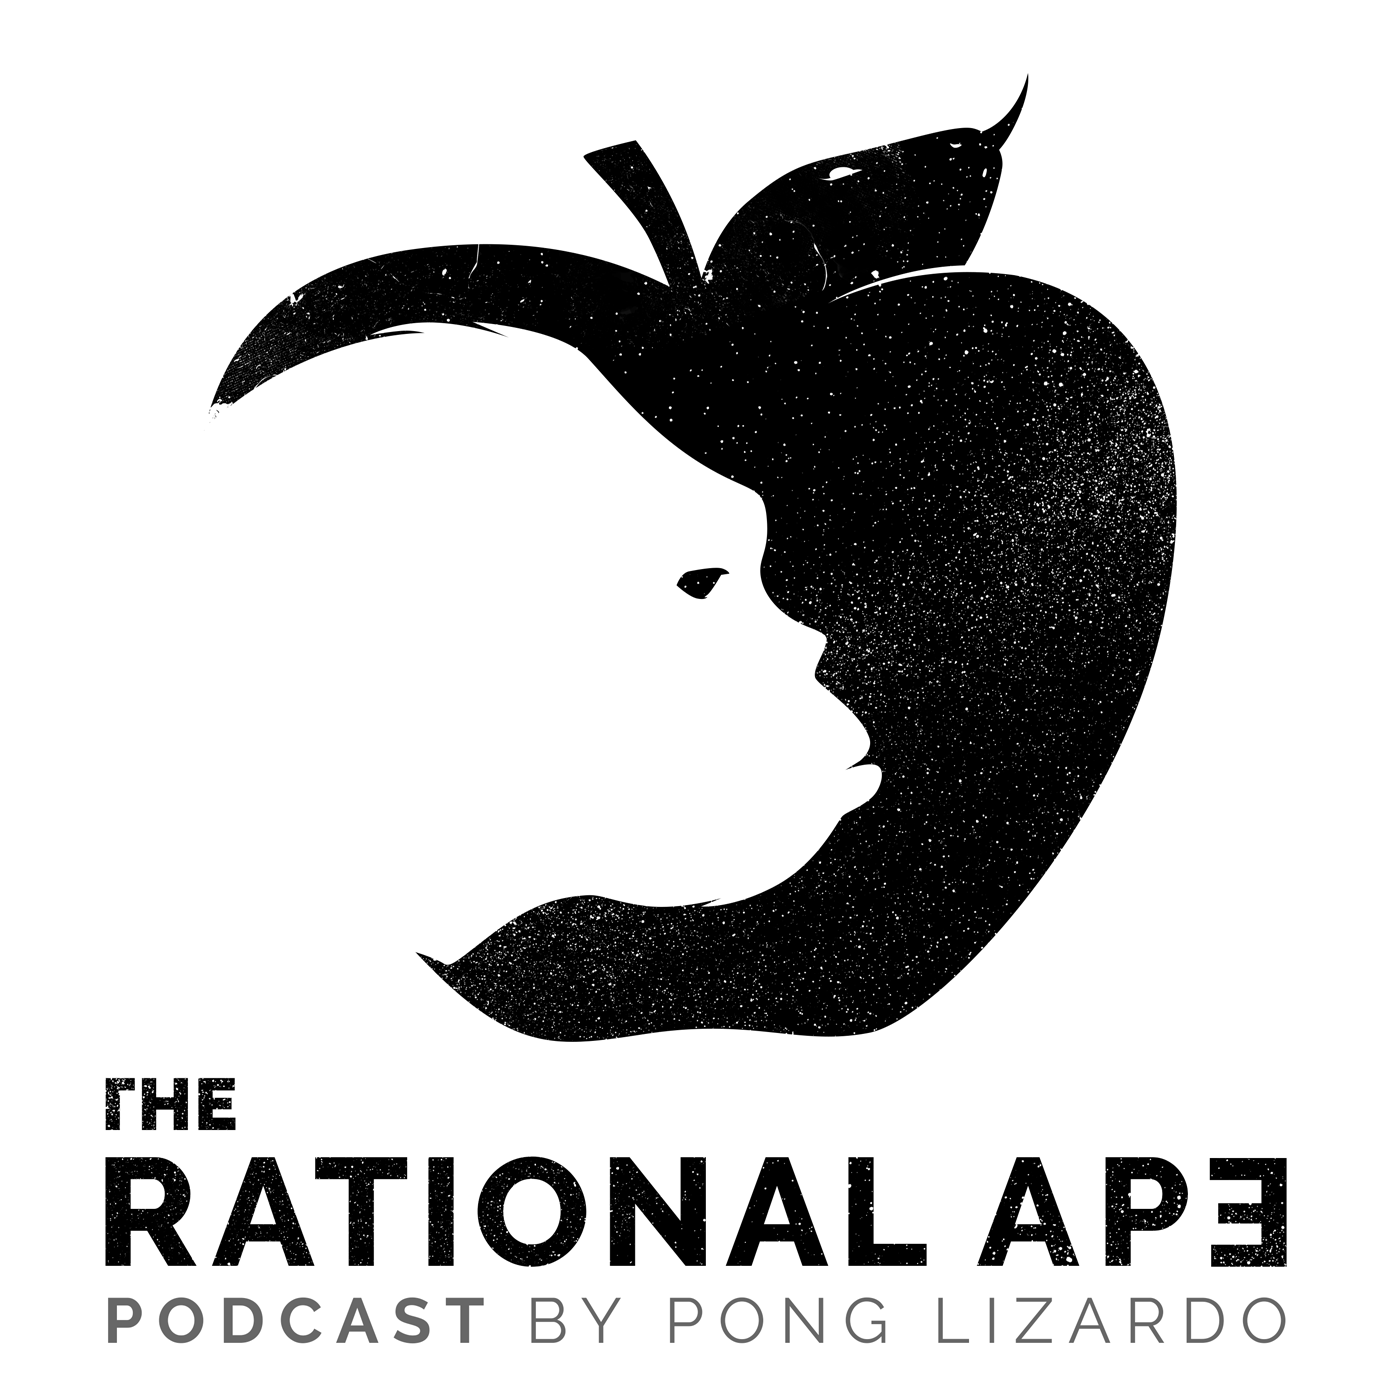 A Vow To Reason: The Rational Ape Premier Episode